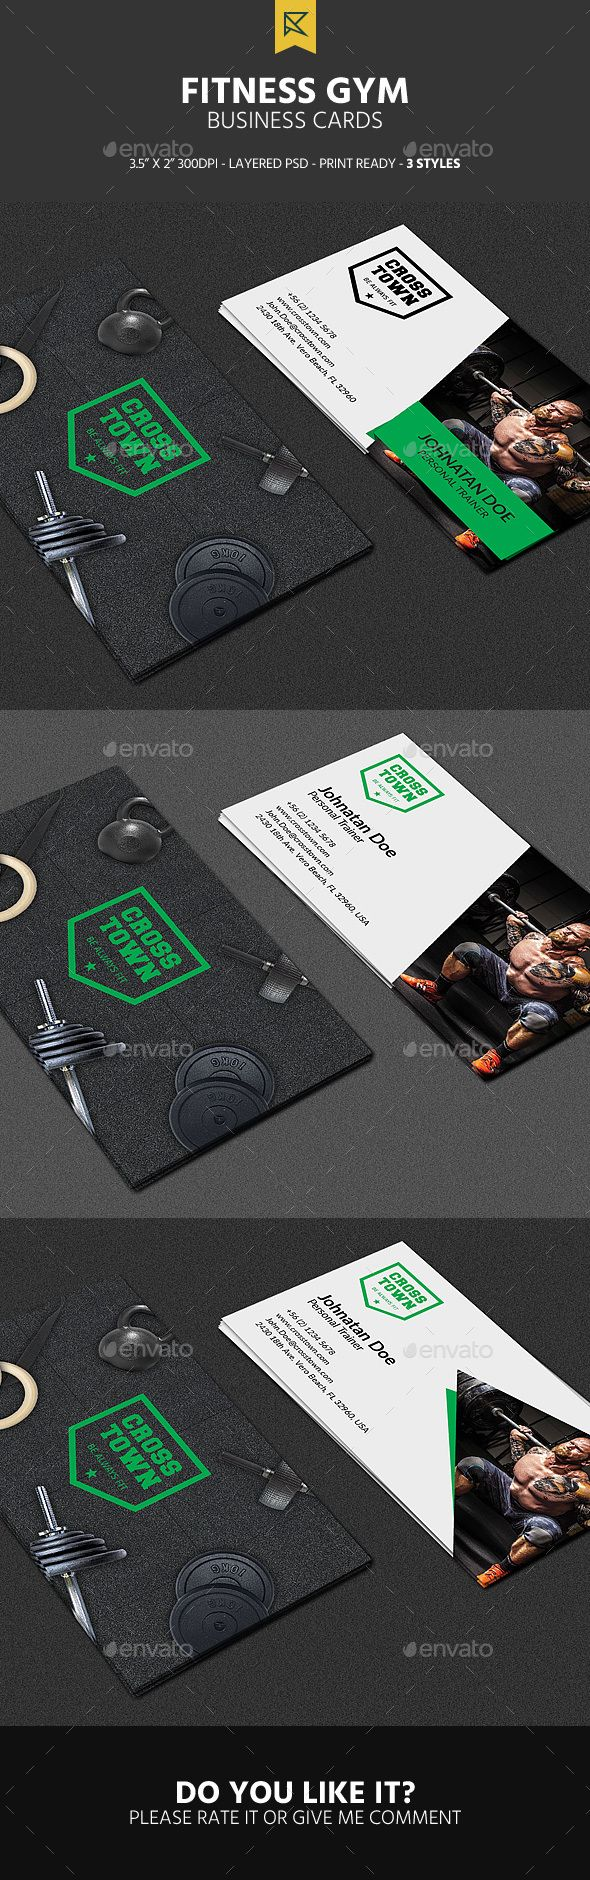 Fitness Gym Business Cards Business Cards Print Templates